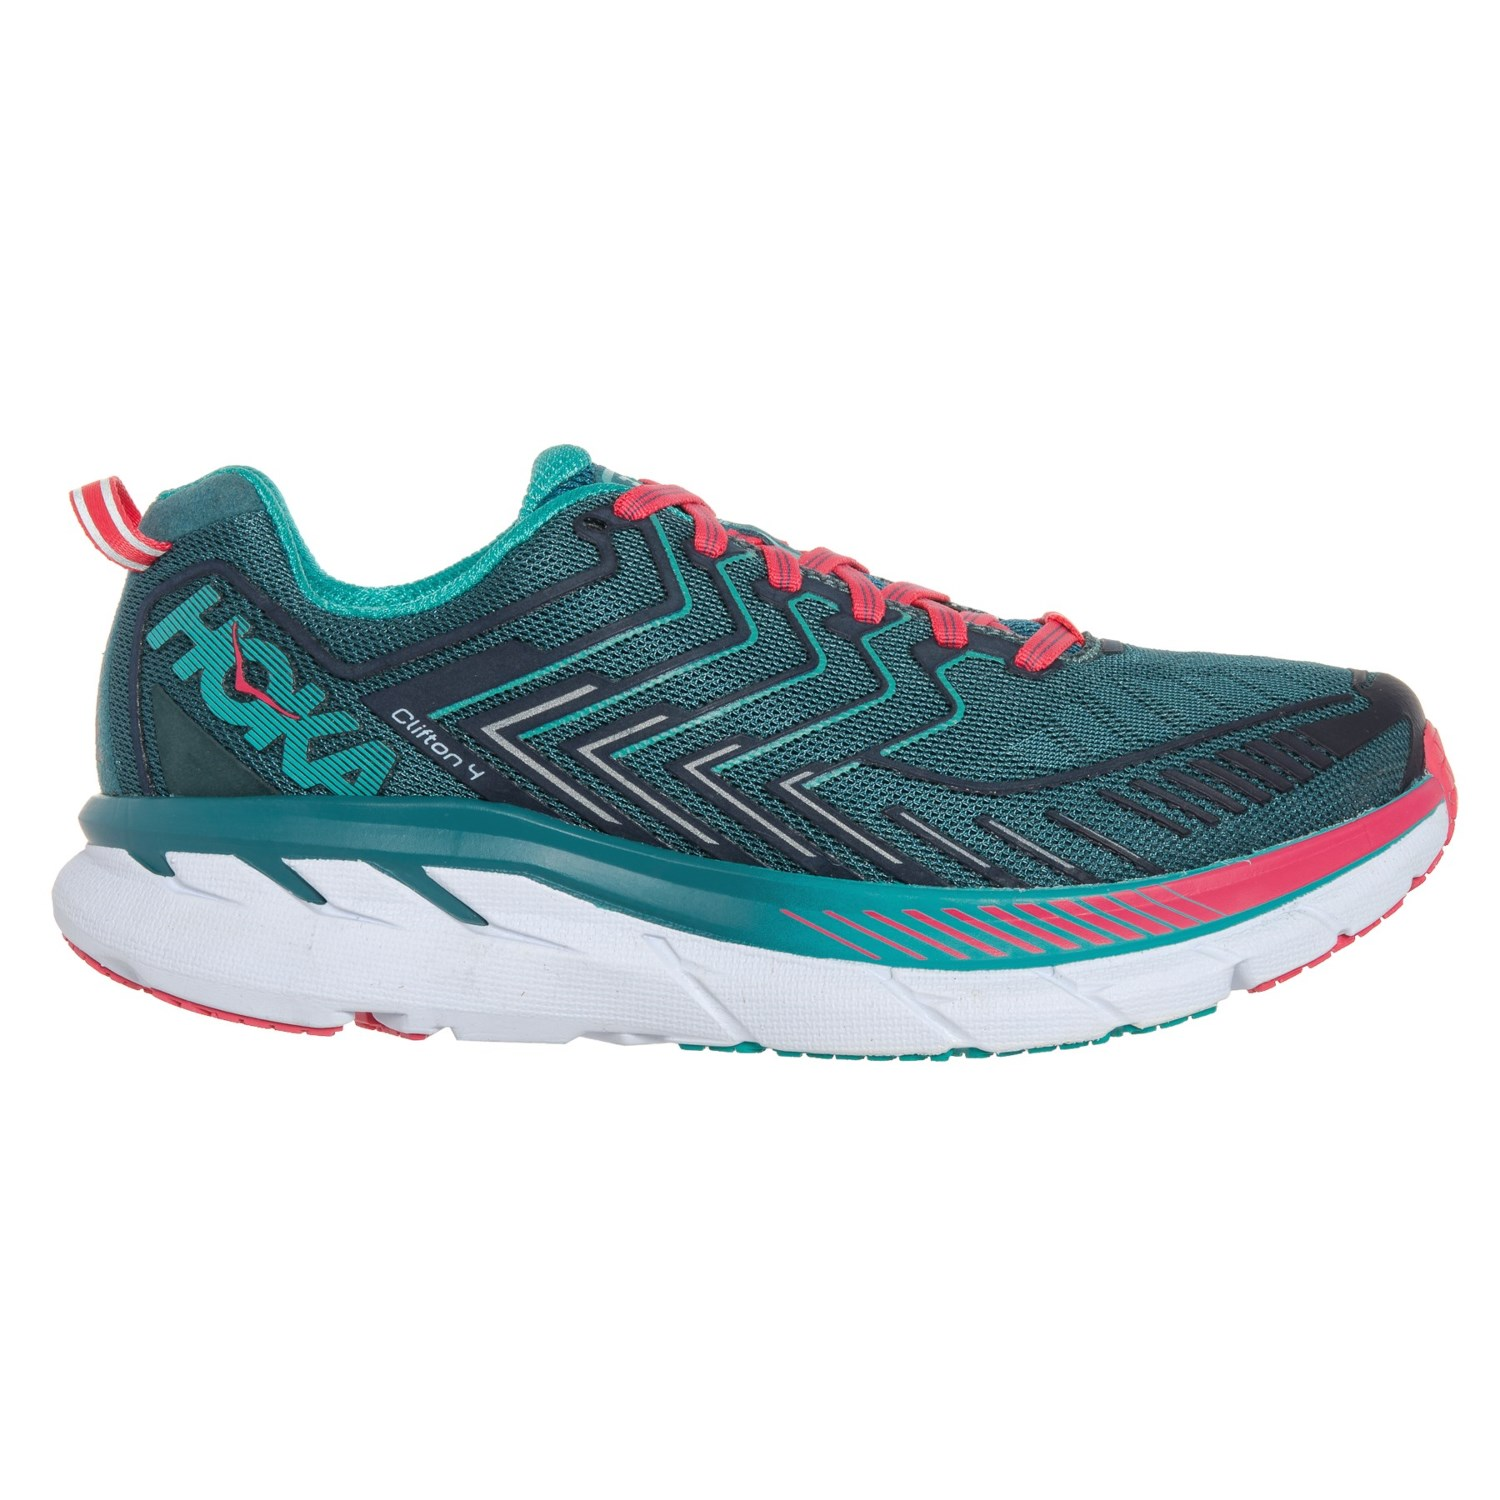 Hoka One One Clifton 4 Running Shoes (For Women) - Save 44% efb71436b